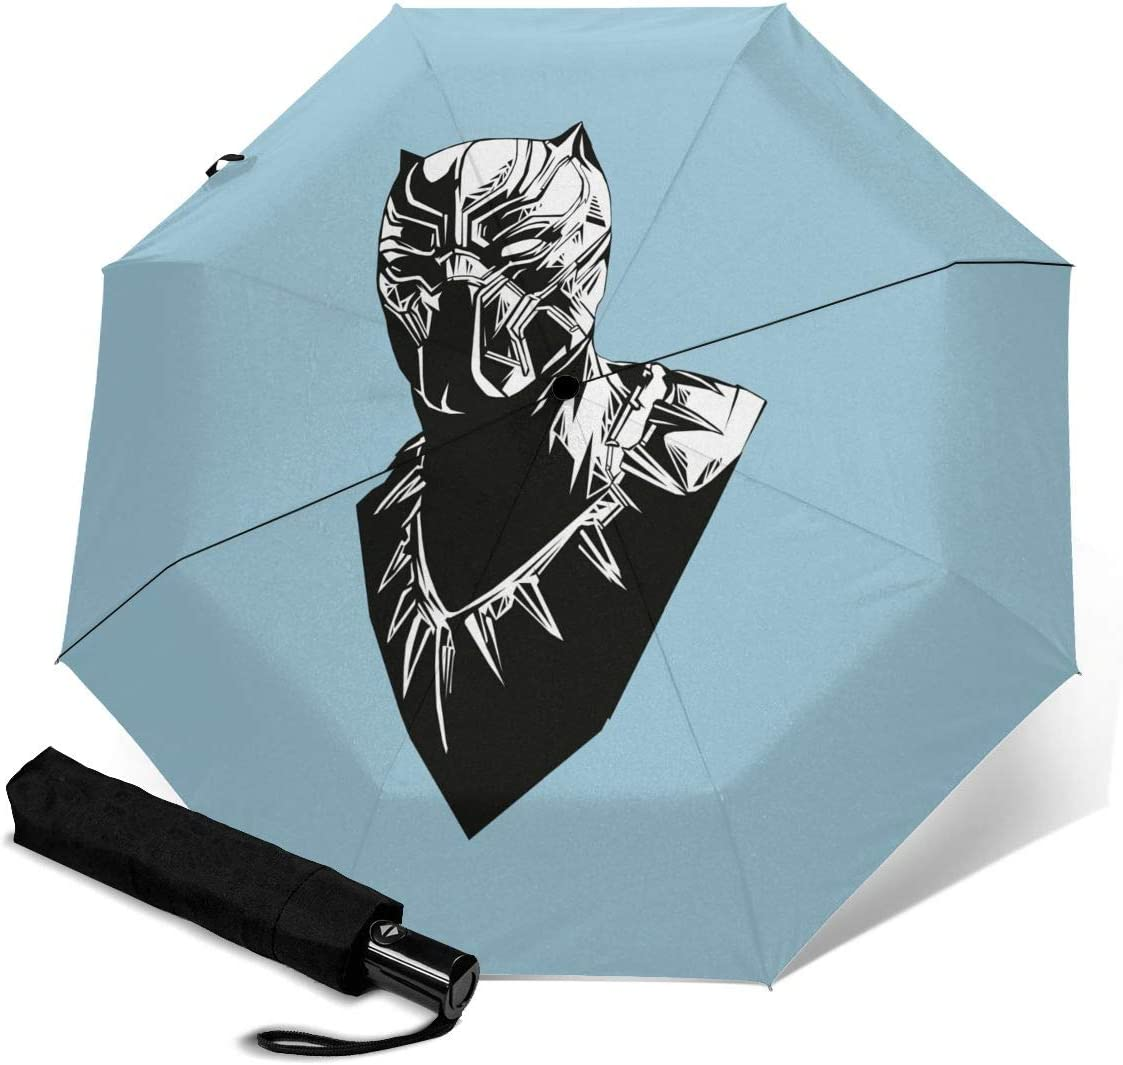 Aven-Gers G-AME Compact Auto Open Close Folding Business Umbrellas UV Protection Automatic Tri-fold Umbrella for Men and Women Lovesofun Portable Automatic Umbrella